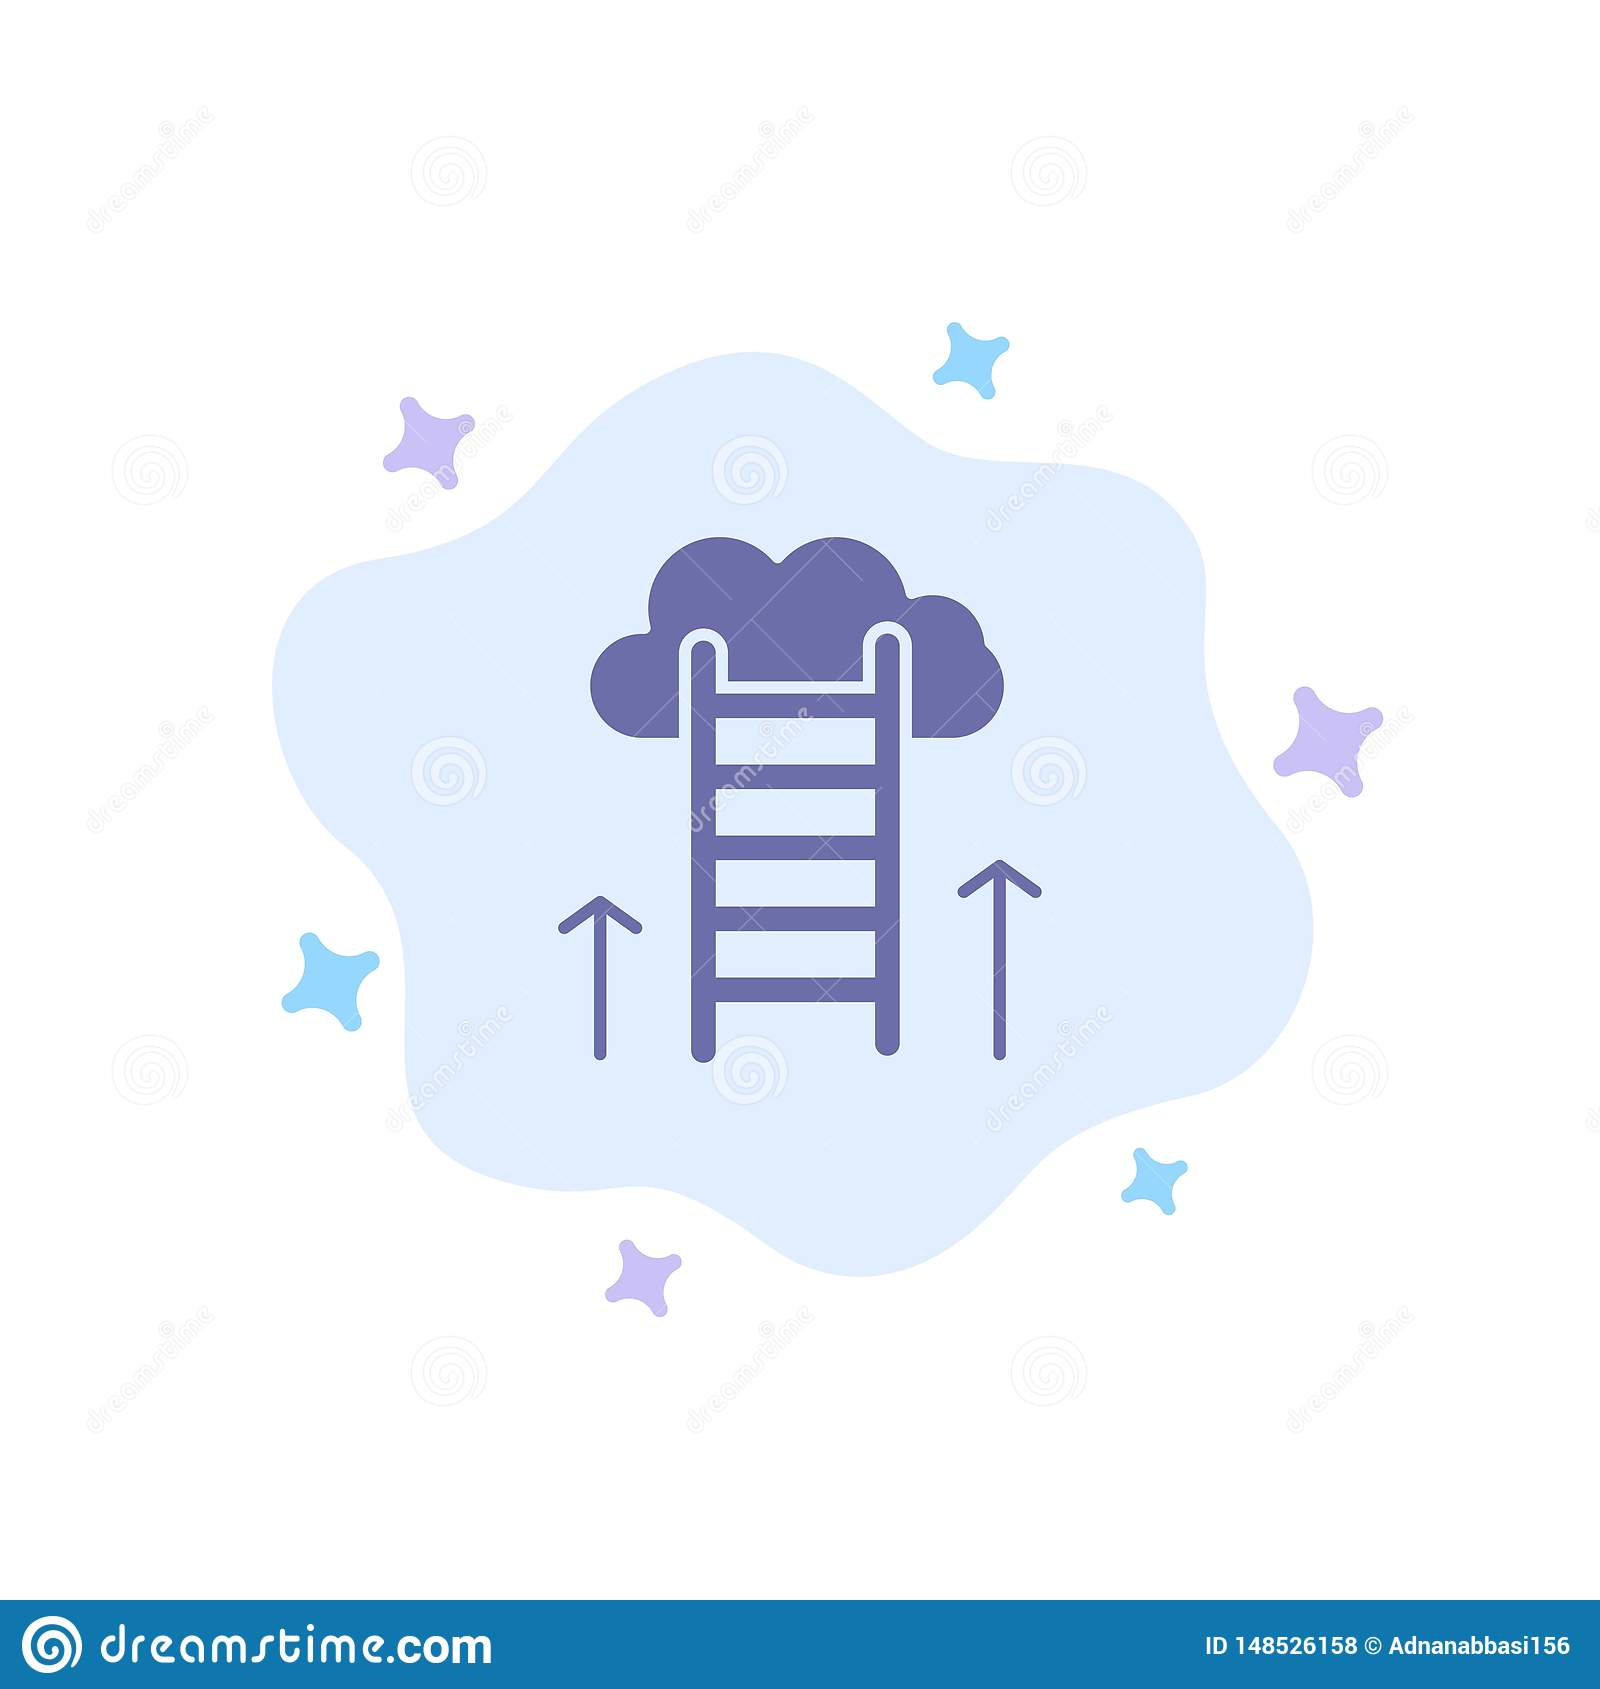 Career Path, Career, Dream, Success, Focus Blue Icon on Abstract Cloud Background